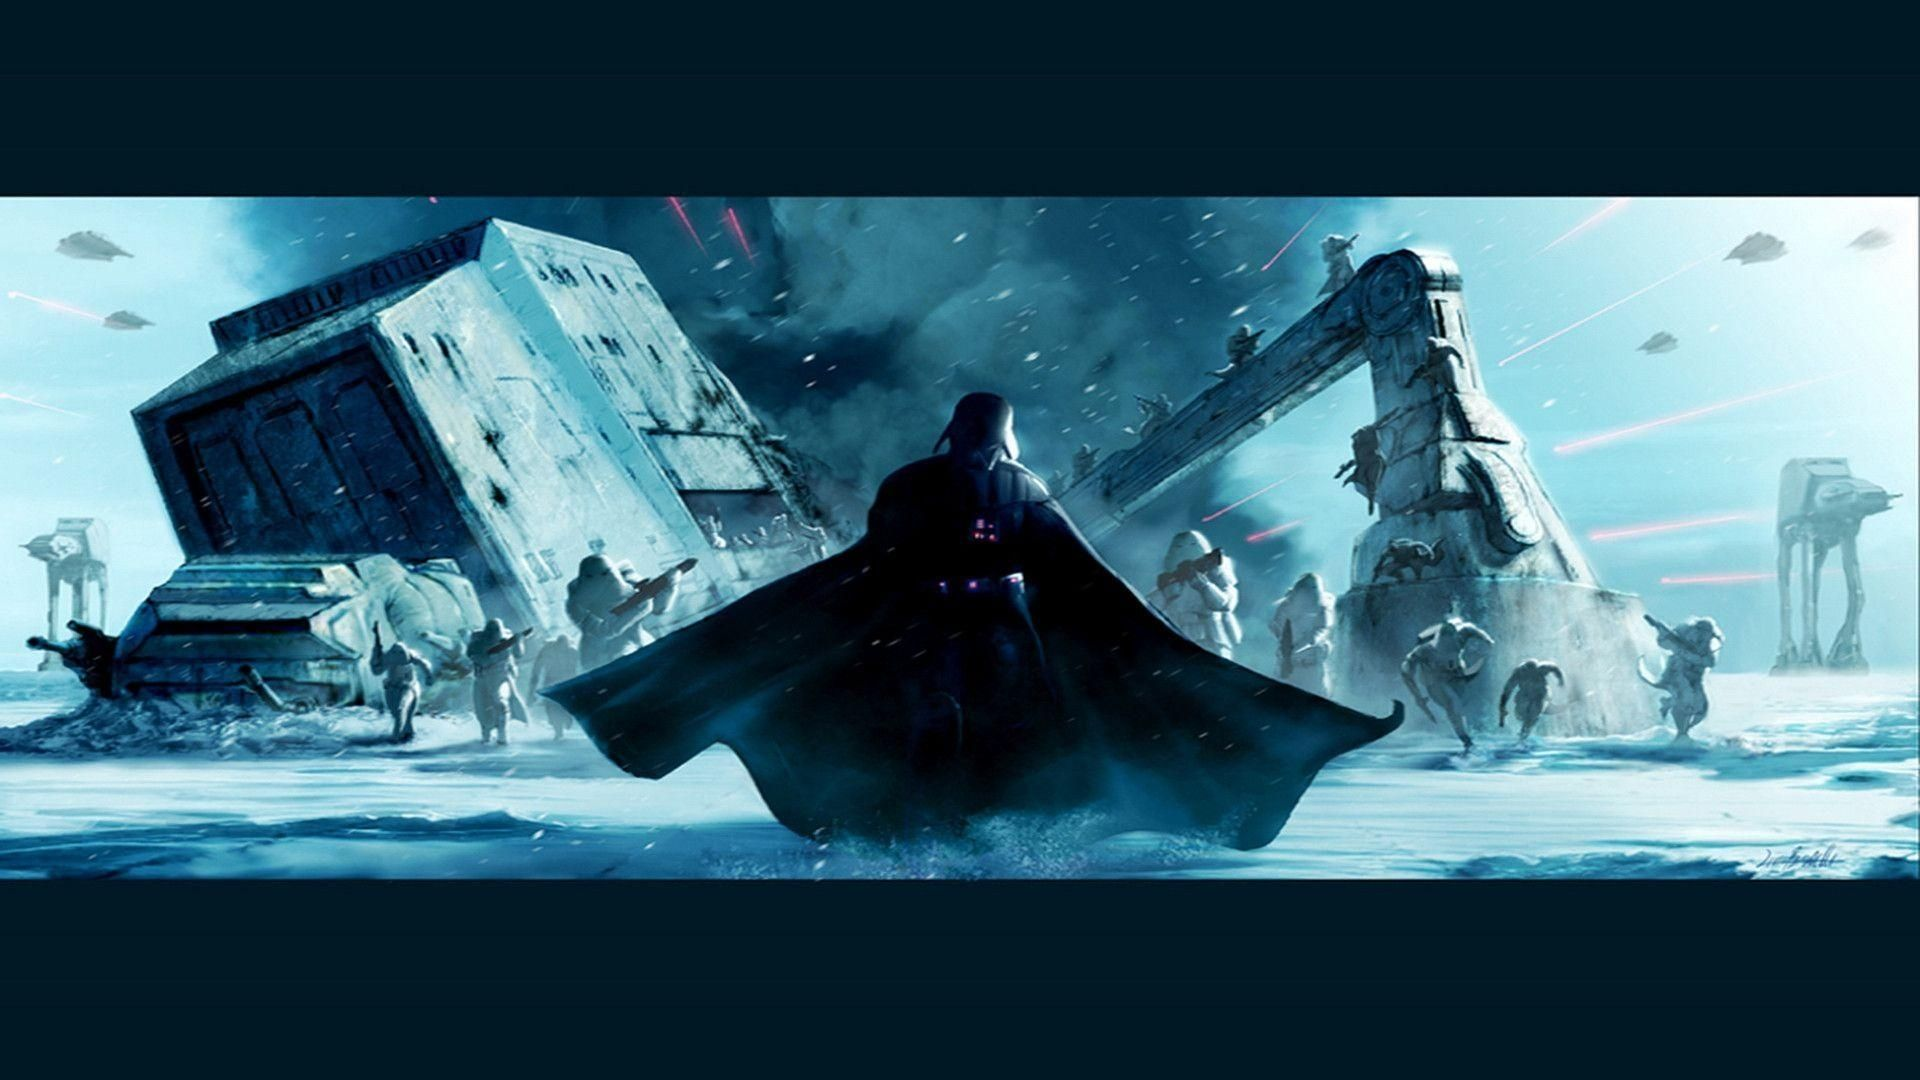 10 Latest Star Wars Wallpapers 1920x1080 Hd Full Hd 1080p For Pc Background In 2020 Star Wars Illustration Star Wars Background Star Wars Wallpaper